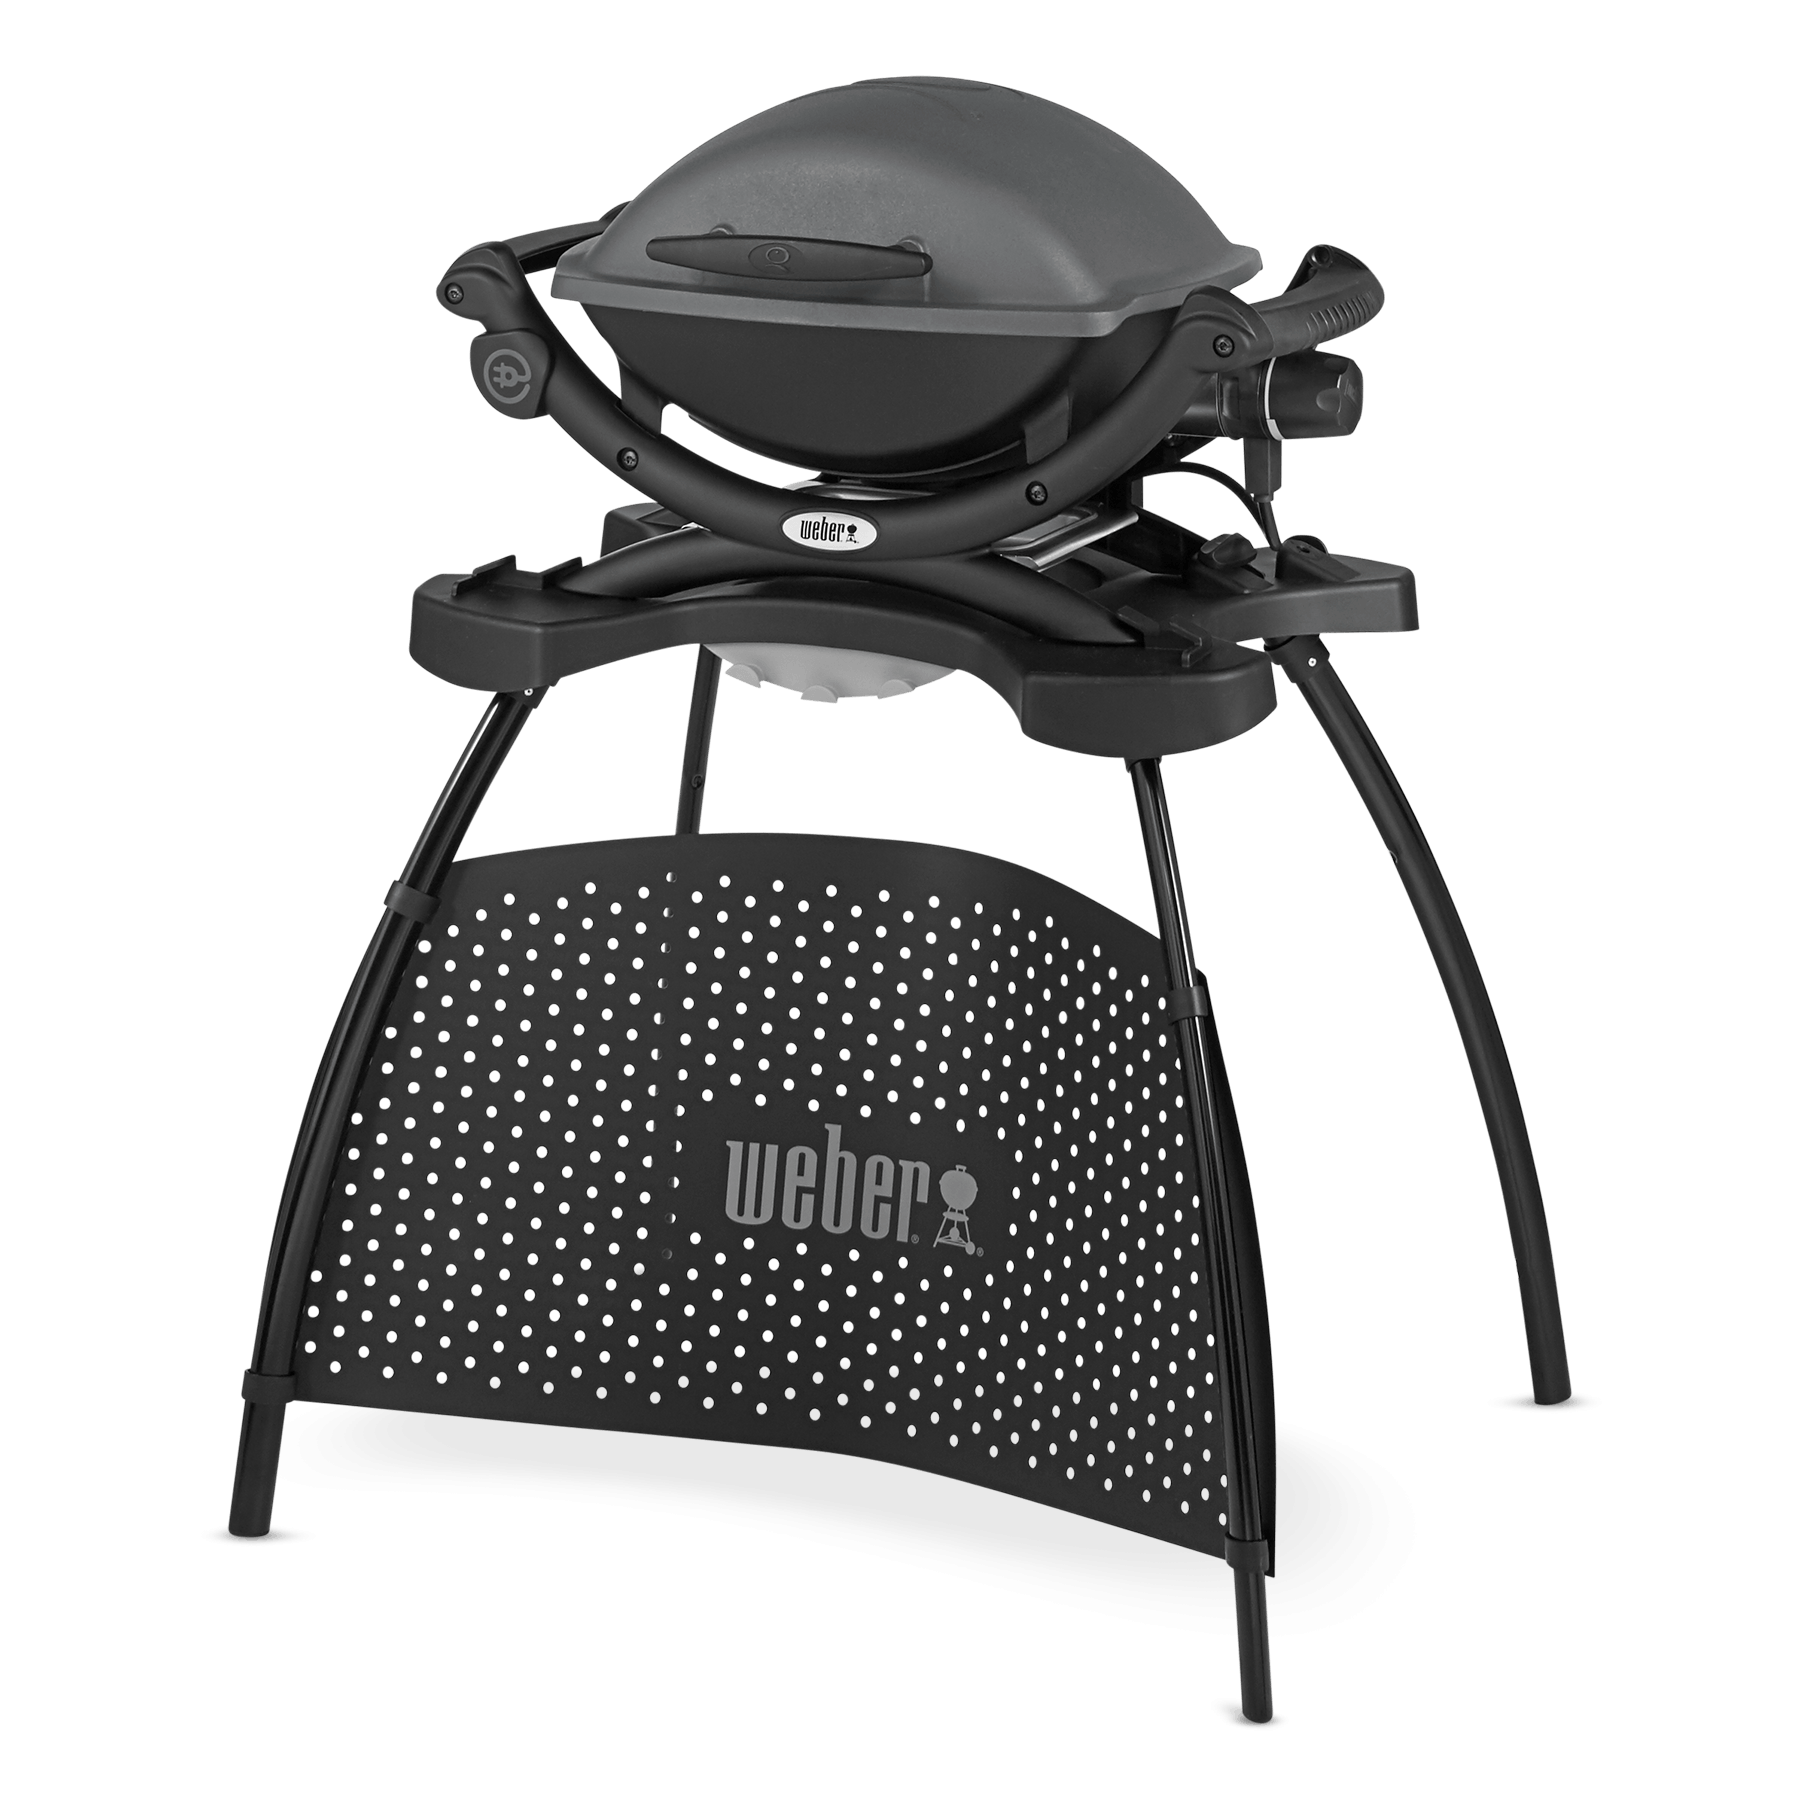 weber elektro grill weber electric grill q 140 bbq weber. Black Bedroom Furniture Sets. Home Design Ideas